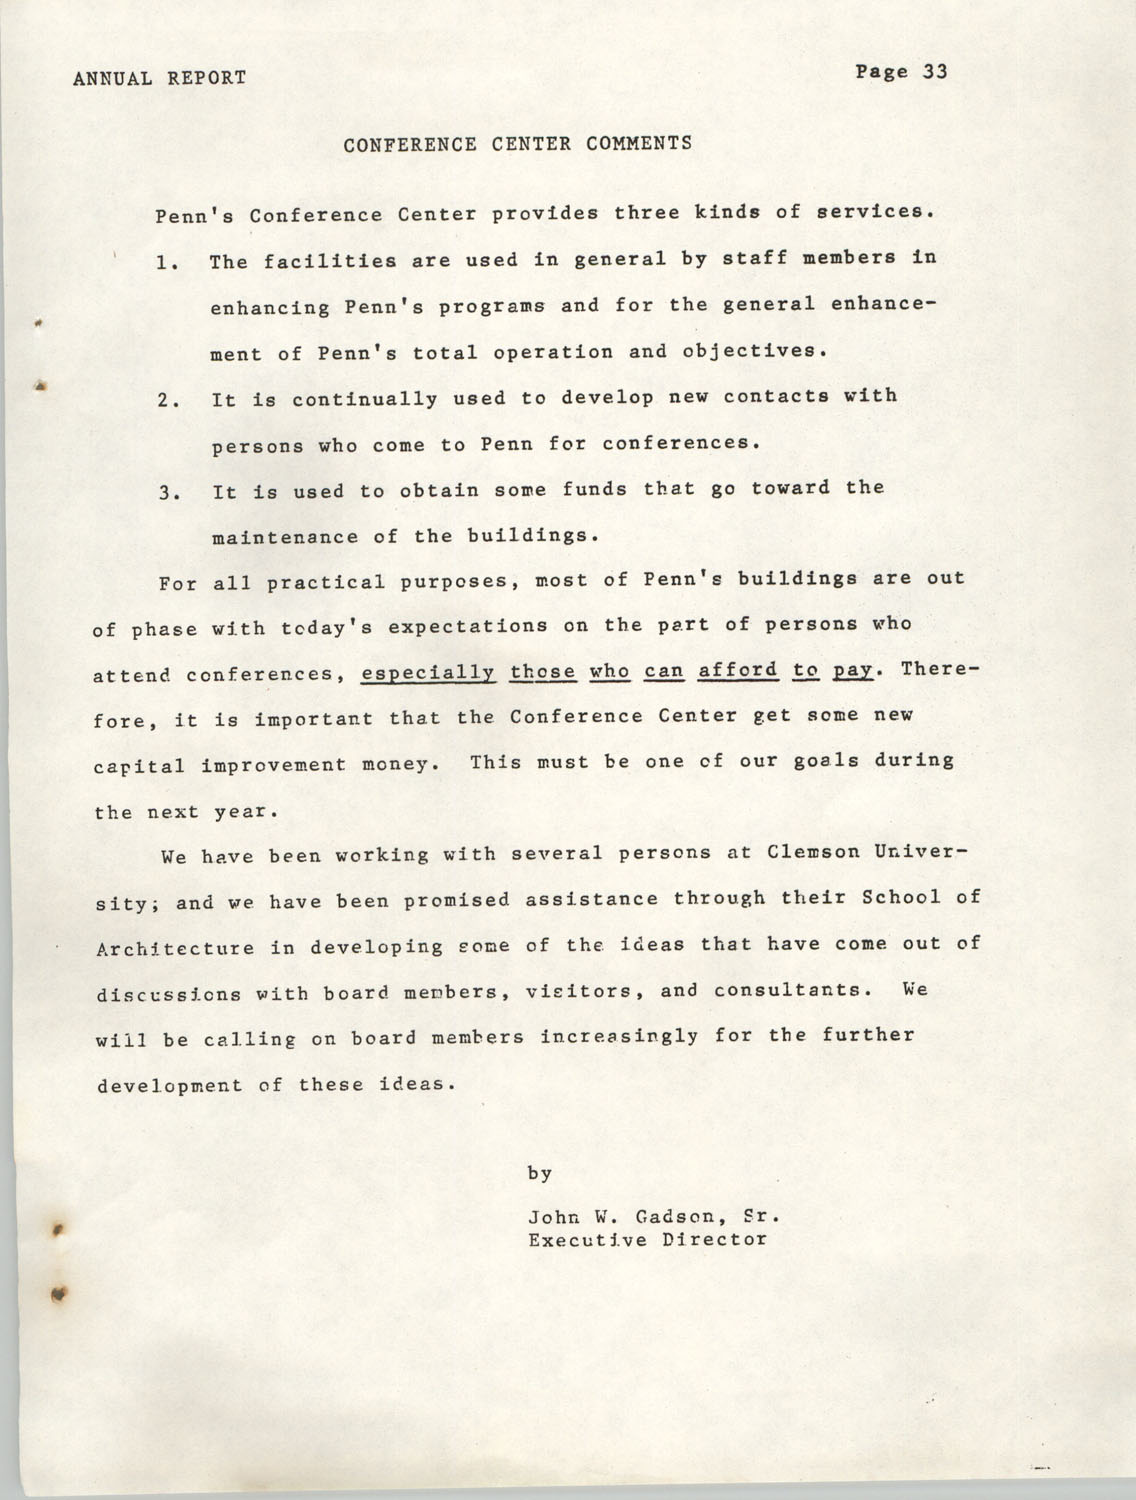 Annual Report, Penn Community Services, 1974, Page 33